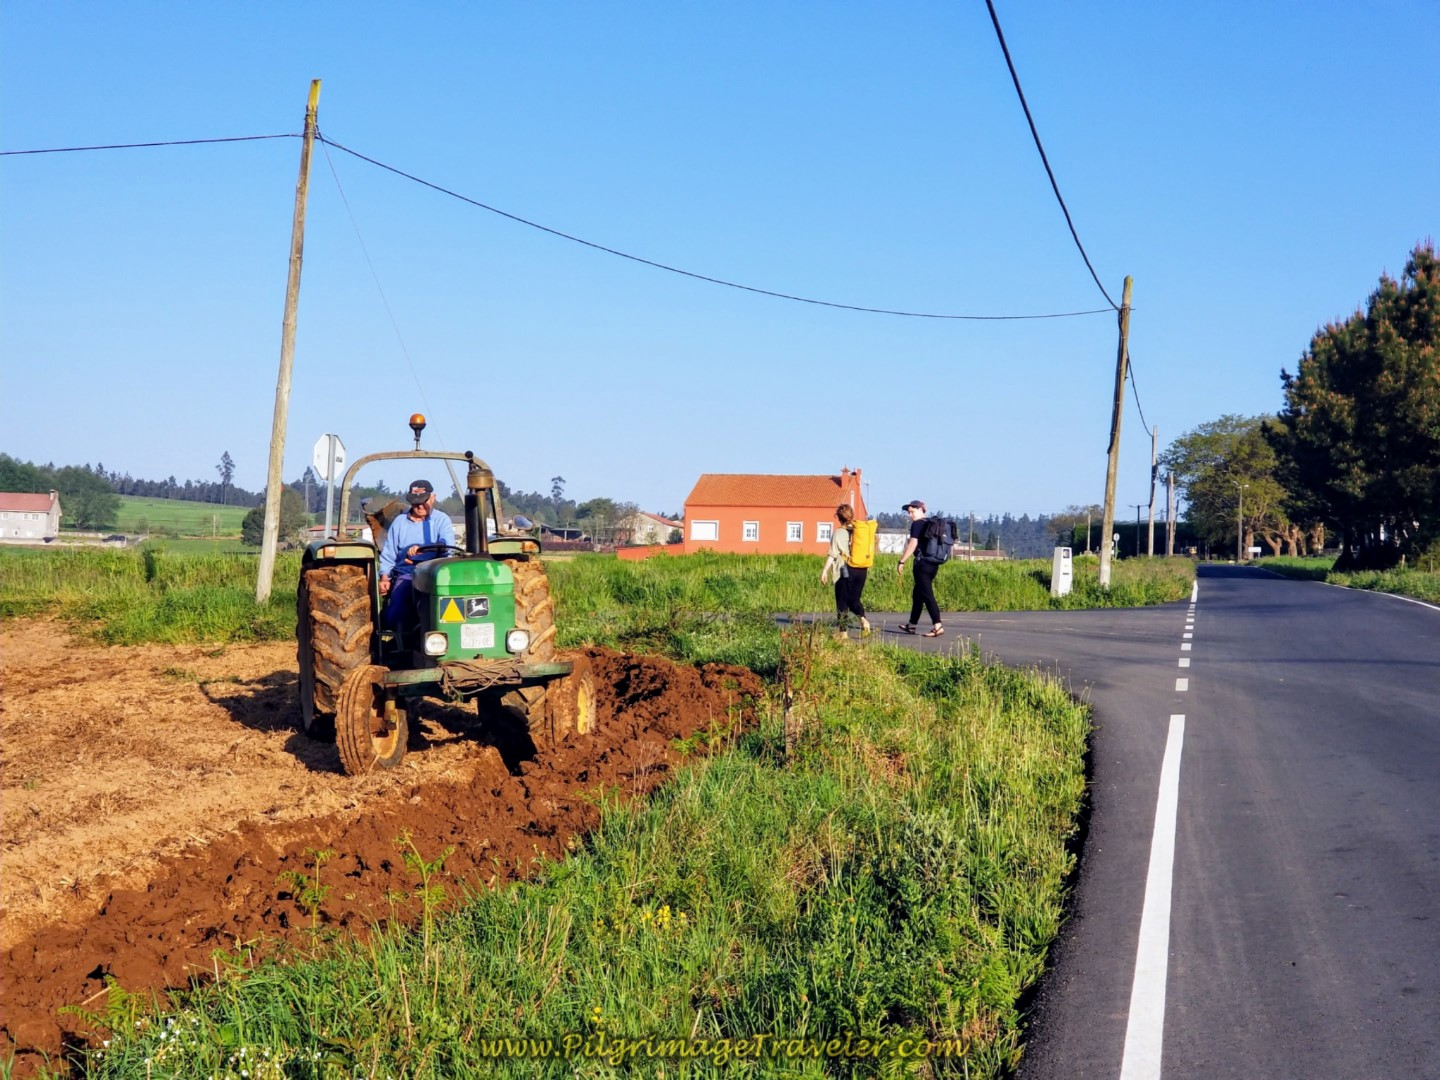 Farmer Plowing as Two Peregrinos Walk By on day eight of the Camino Inglés